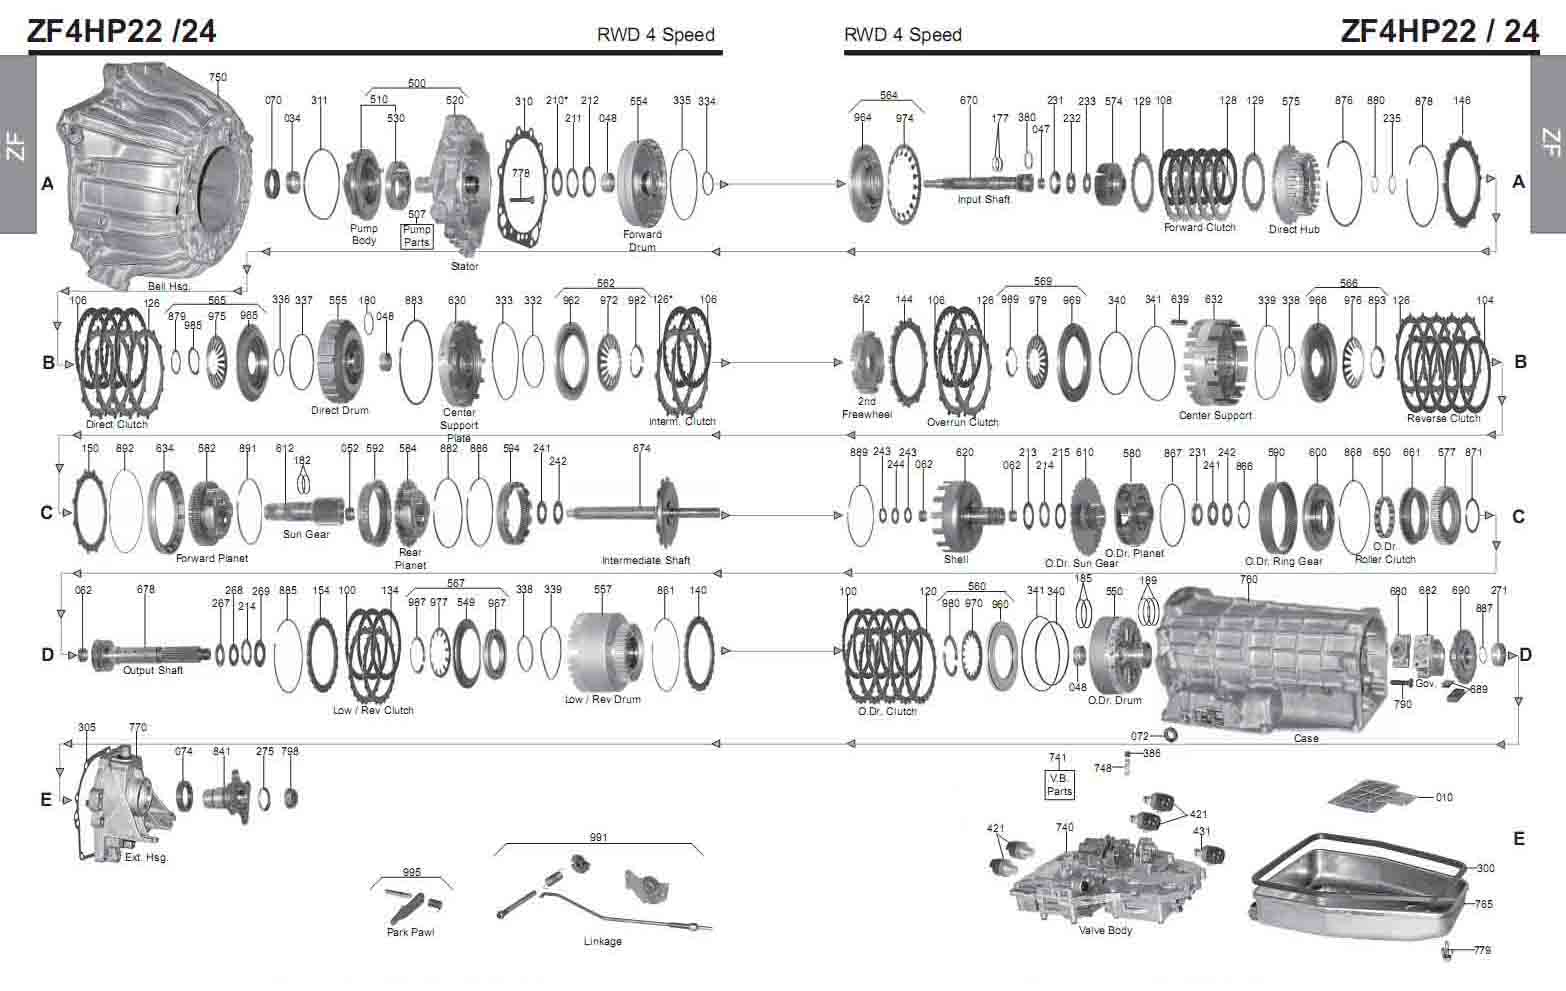 Transmission repair manuals ZF 4HP22 / 4HP24 | Instructions for